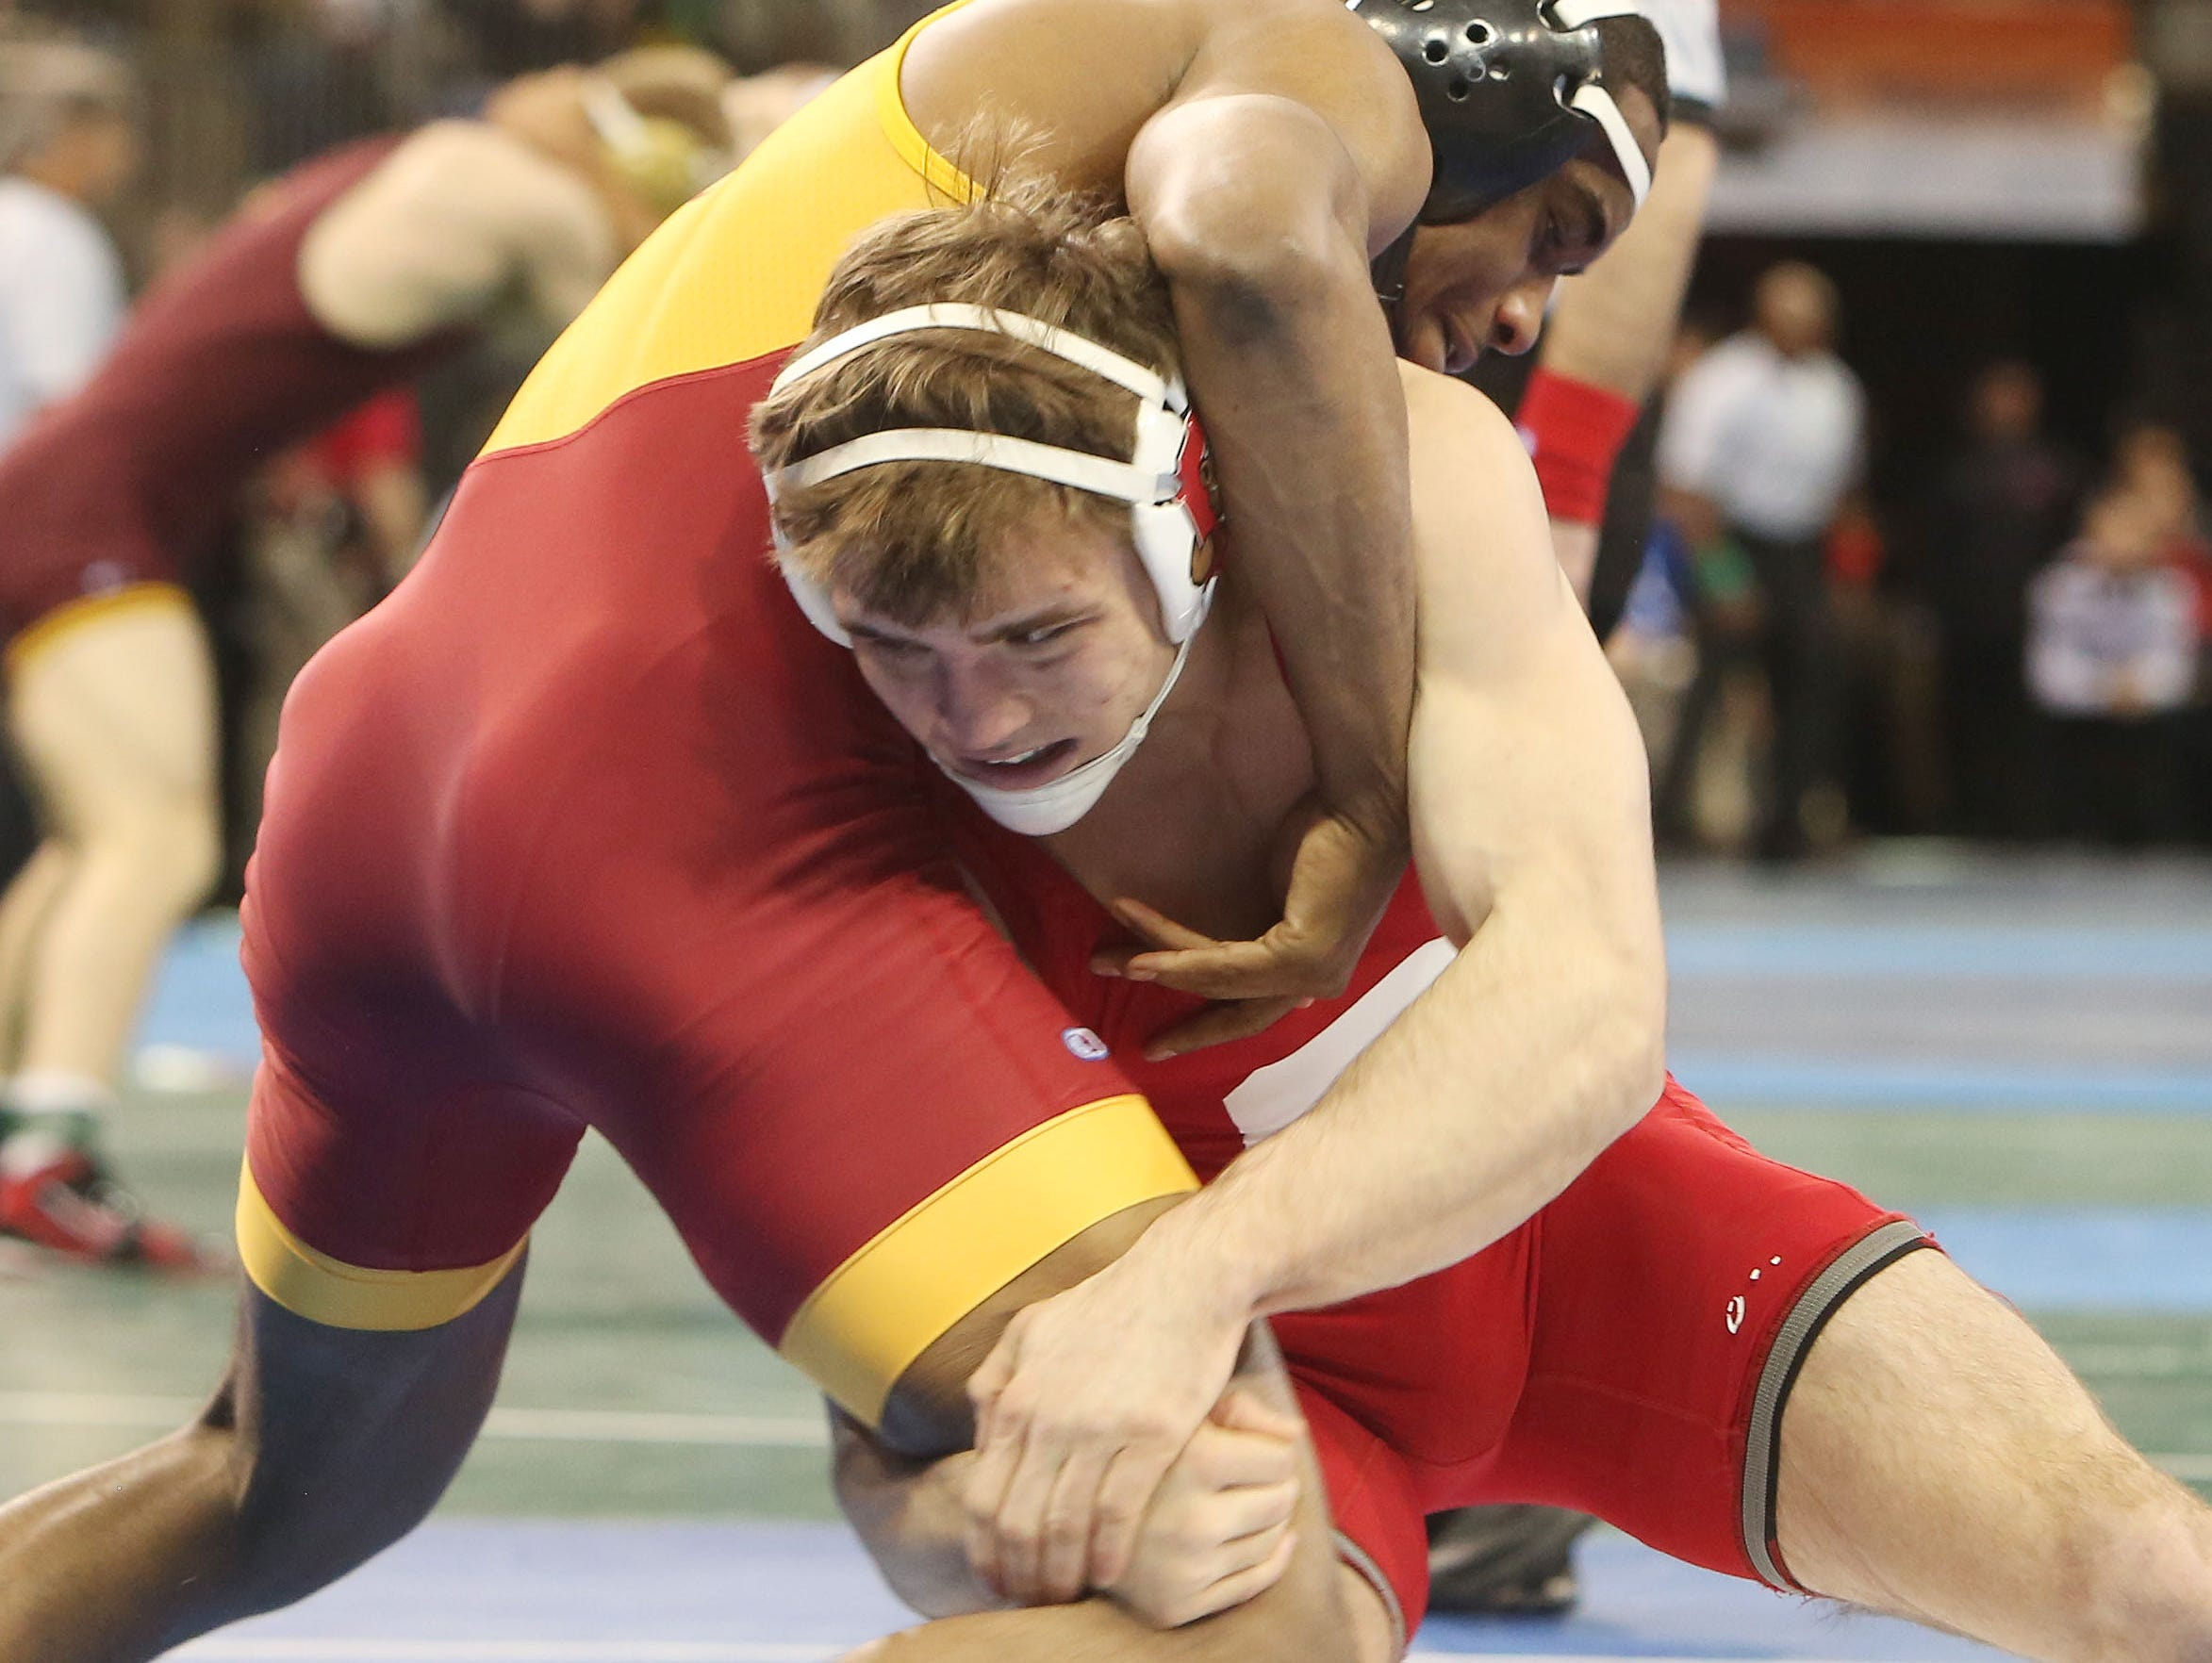 From right, Cornell's Brian Realbuto wrestles against Iowa State's Leland Weatherspoon in the quarterfinals in the 174-pound weight class during the NCAA Wrestling Championships at Madison Square Garden March 17, 2016. Weatherspoon won the match knocking off the number two seed Realbuto.